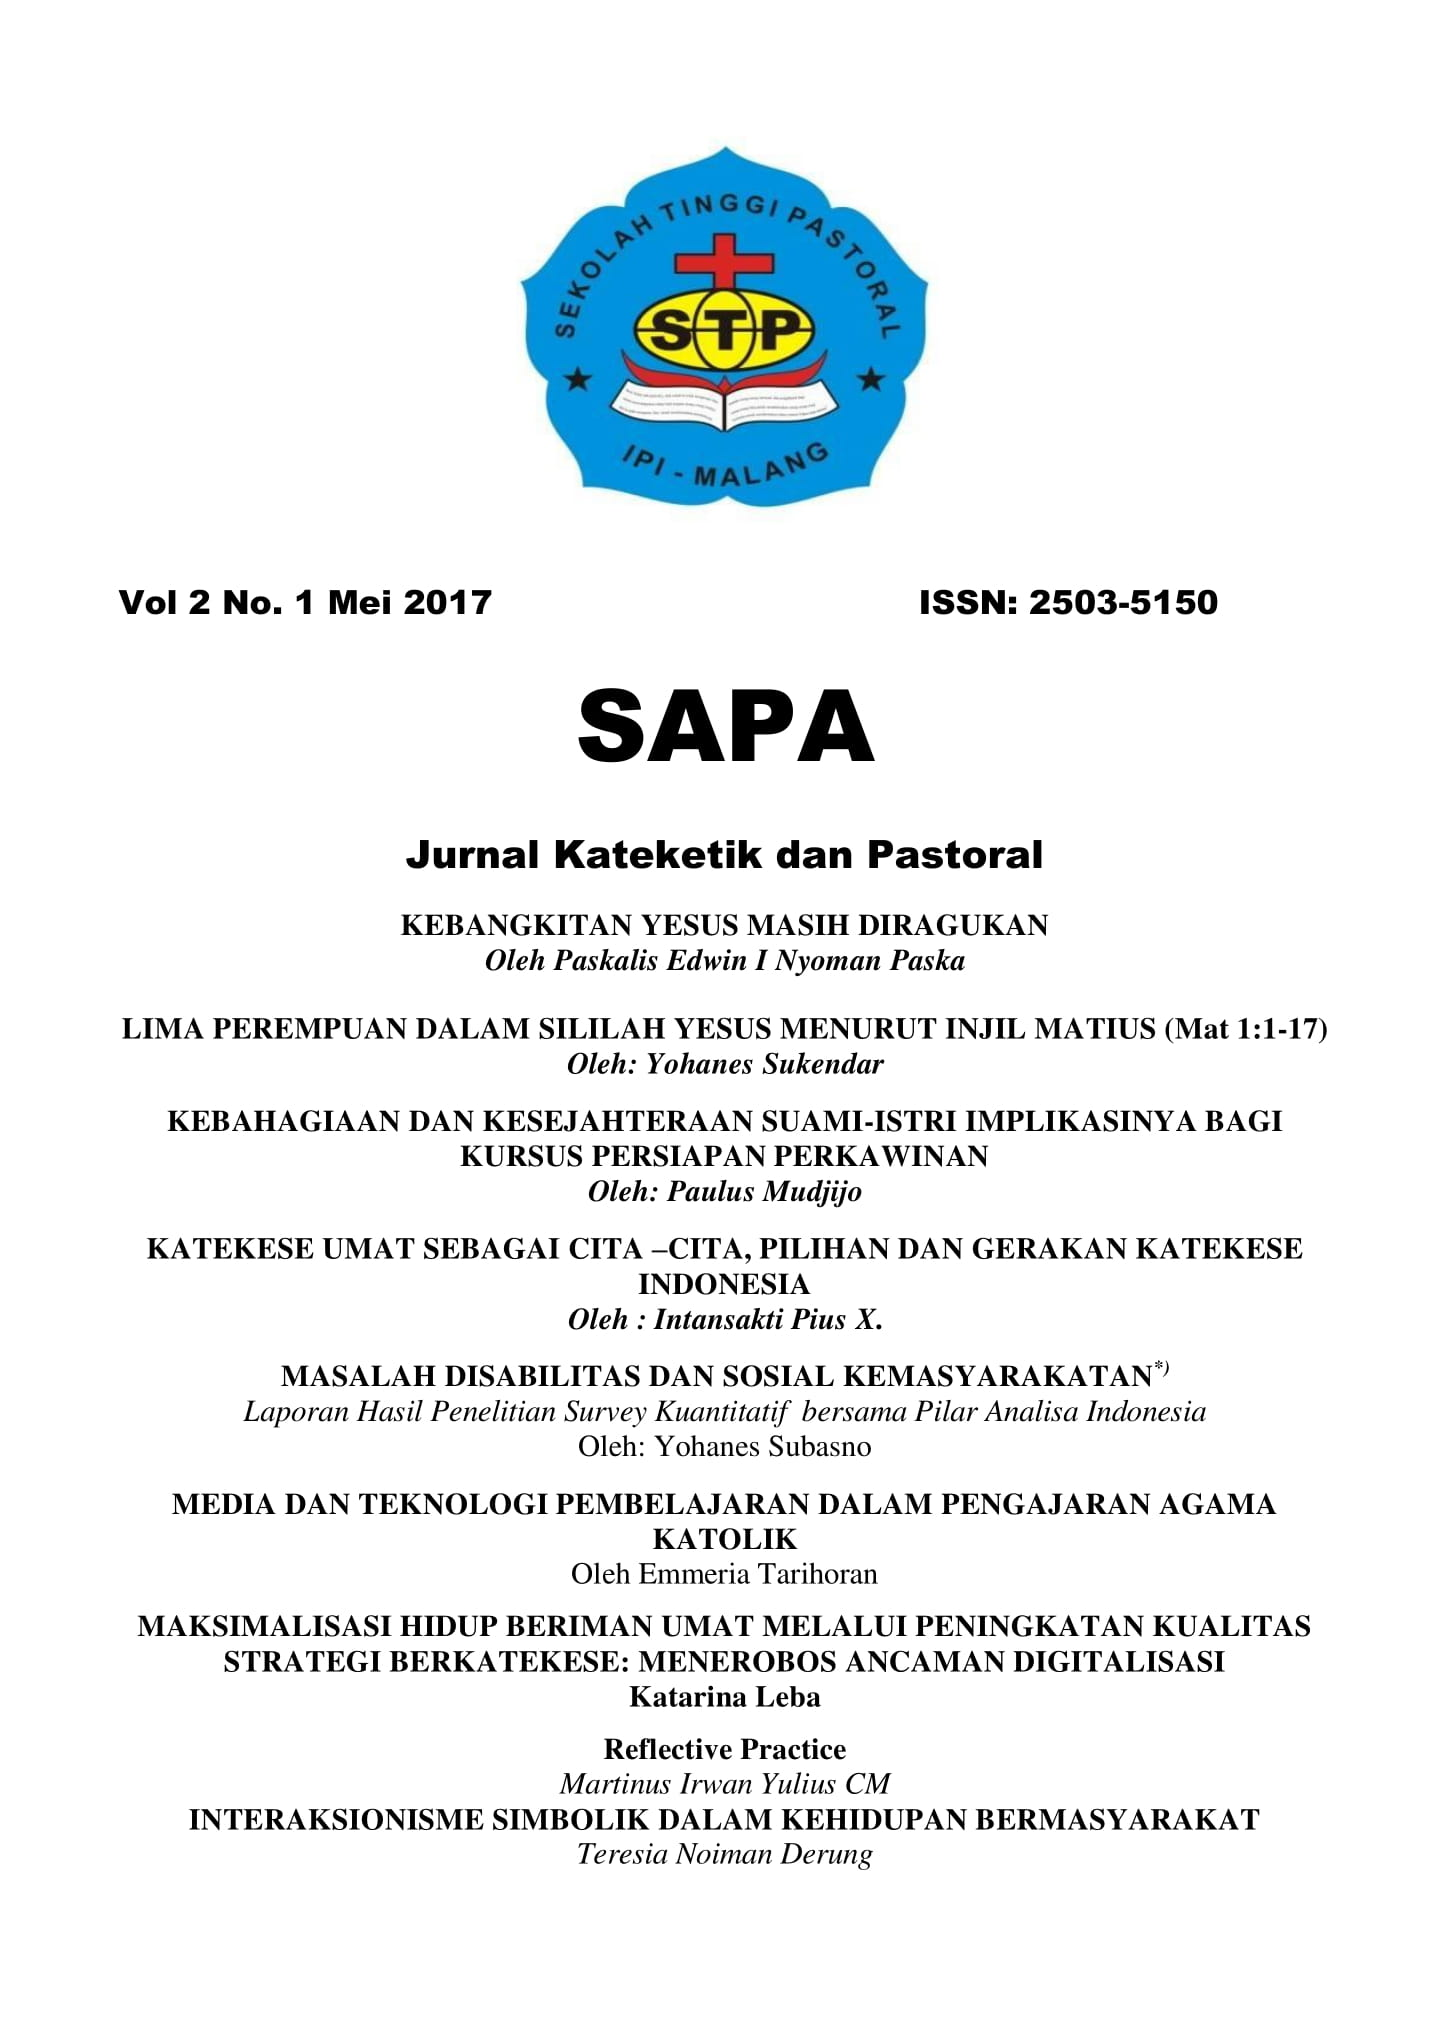 SAPA volume 2 number 1